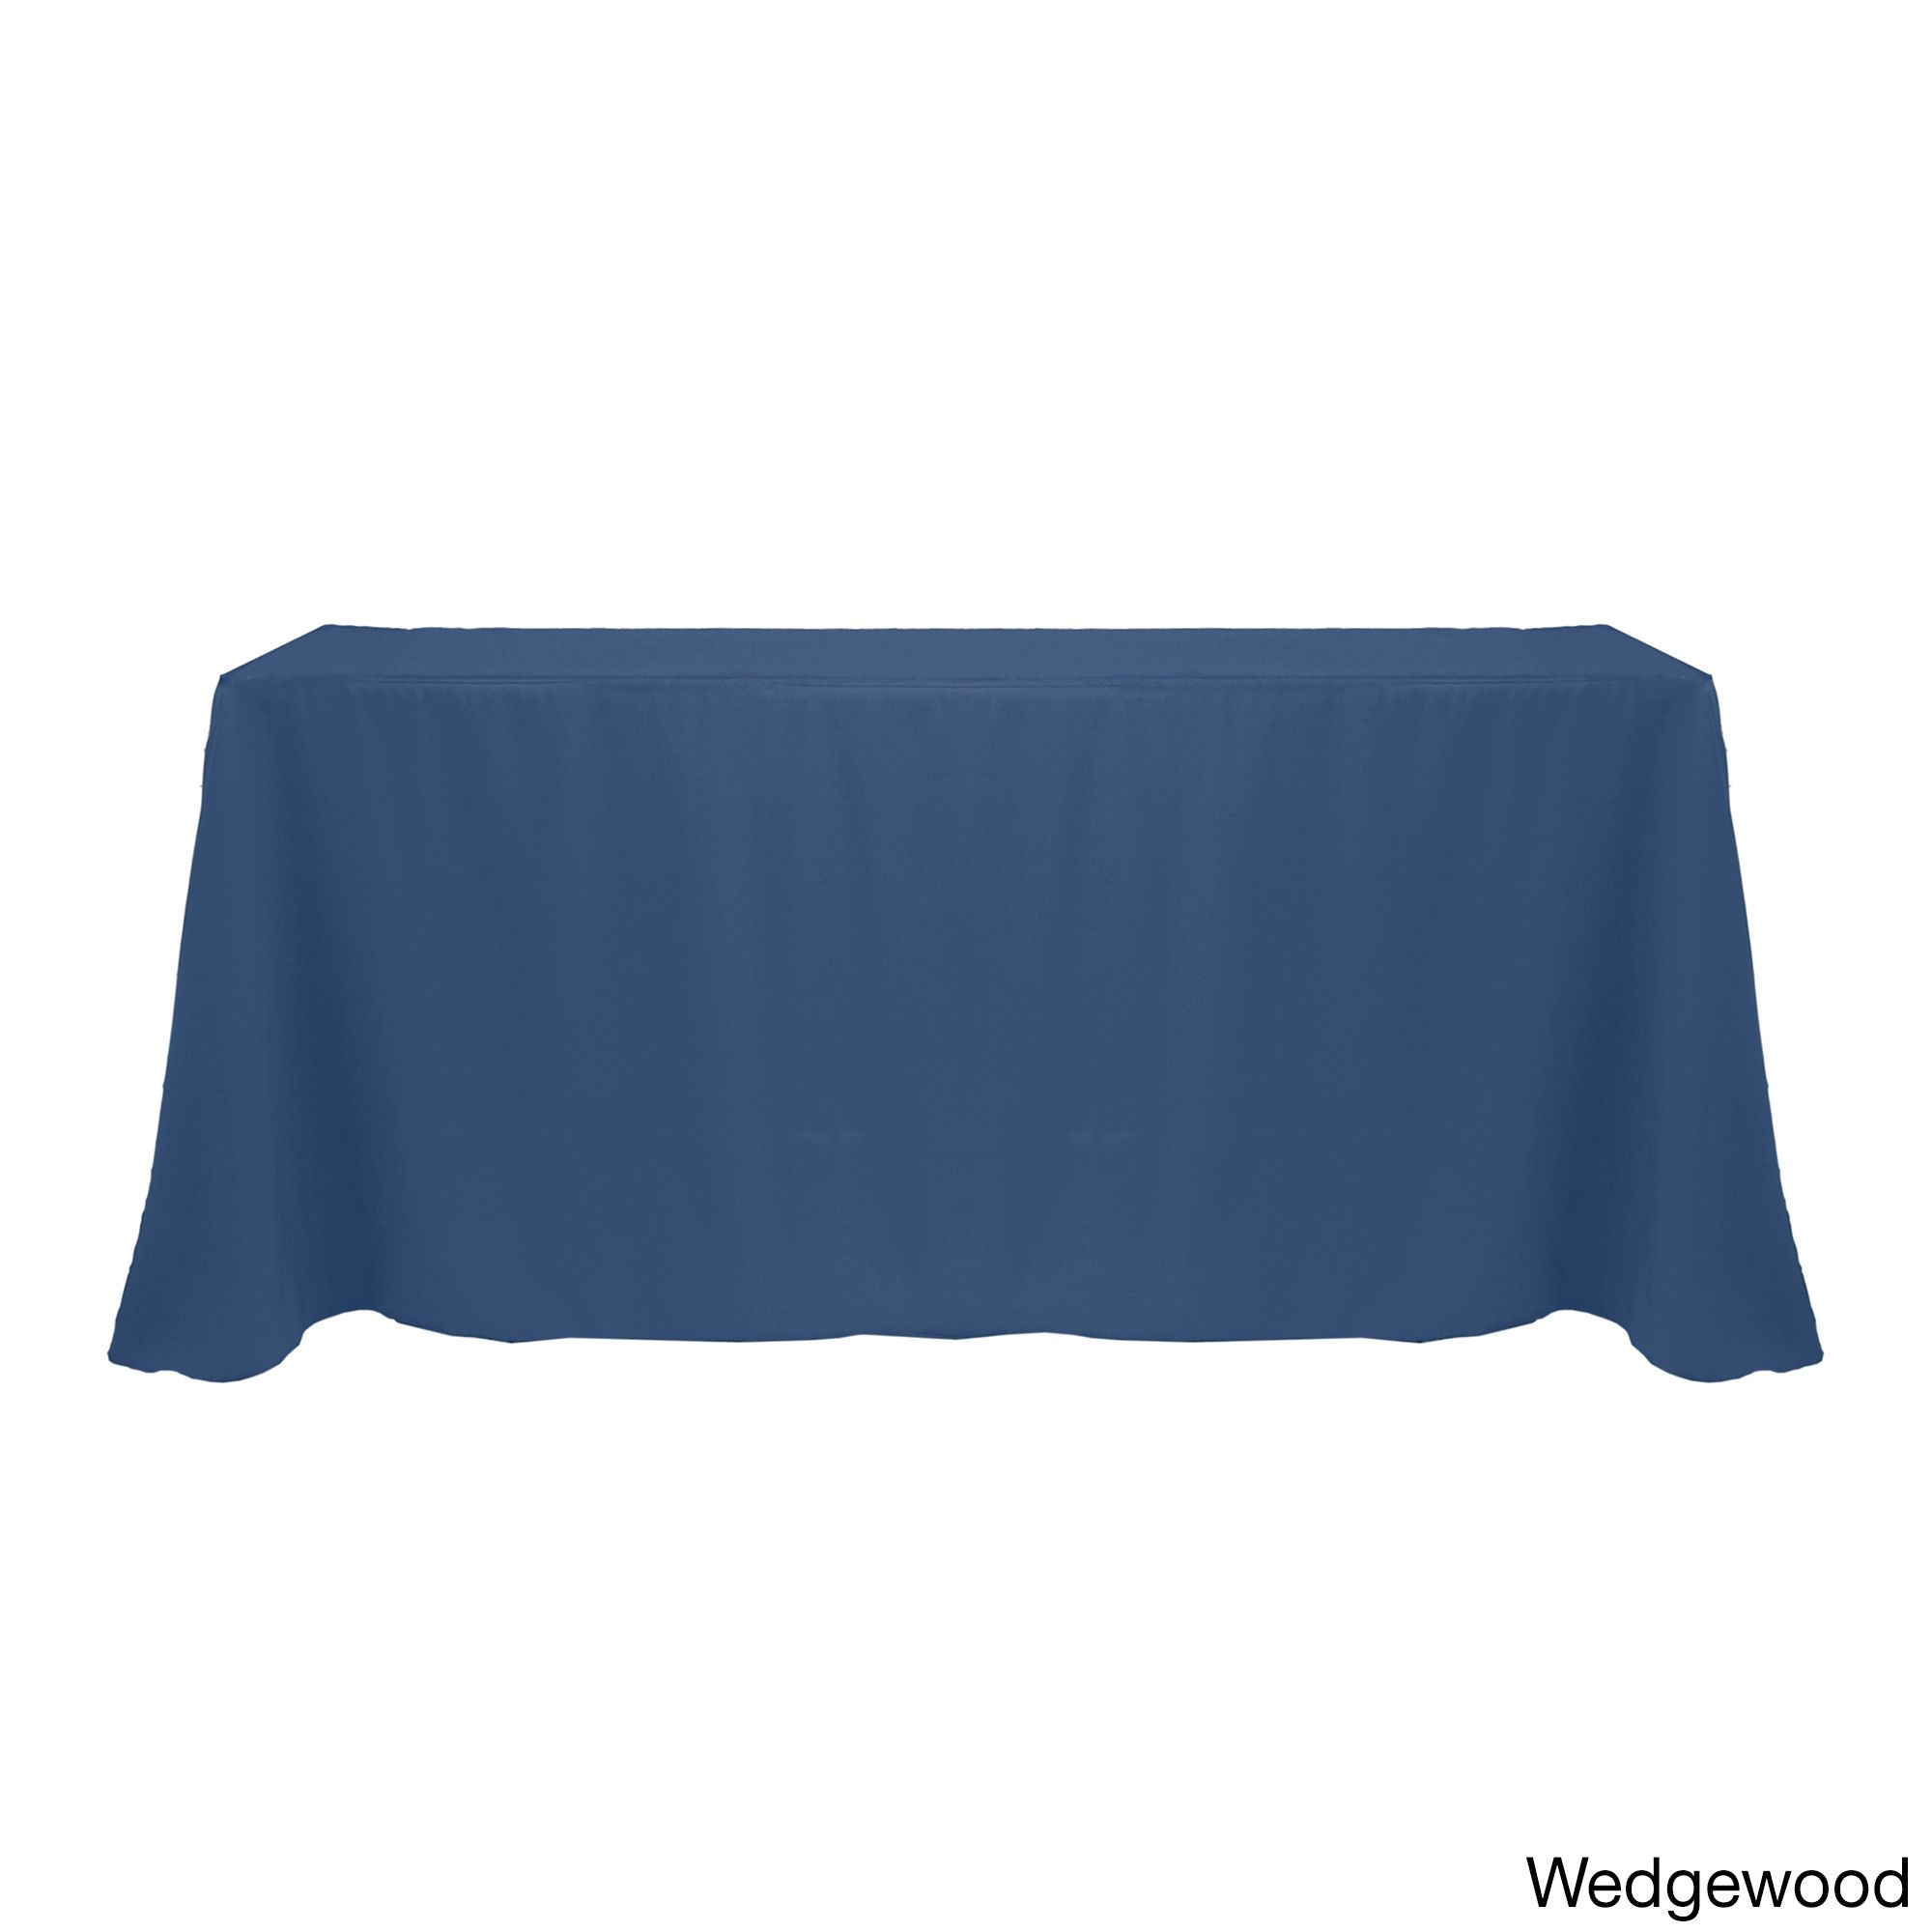 Superieur Solid Color 90x132 Inch Colorful Oval Tablecloth | Overstock.com Shopping    The Best Deals On Tablecloths